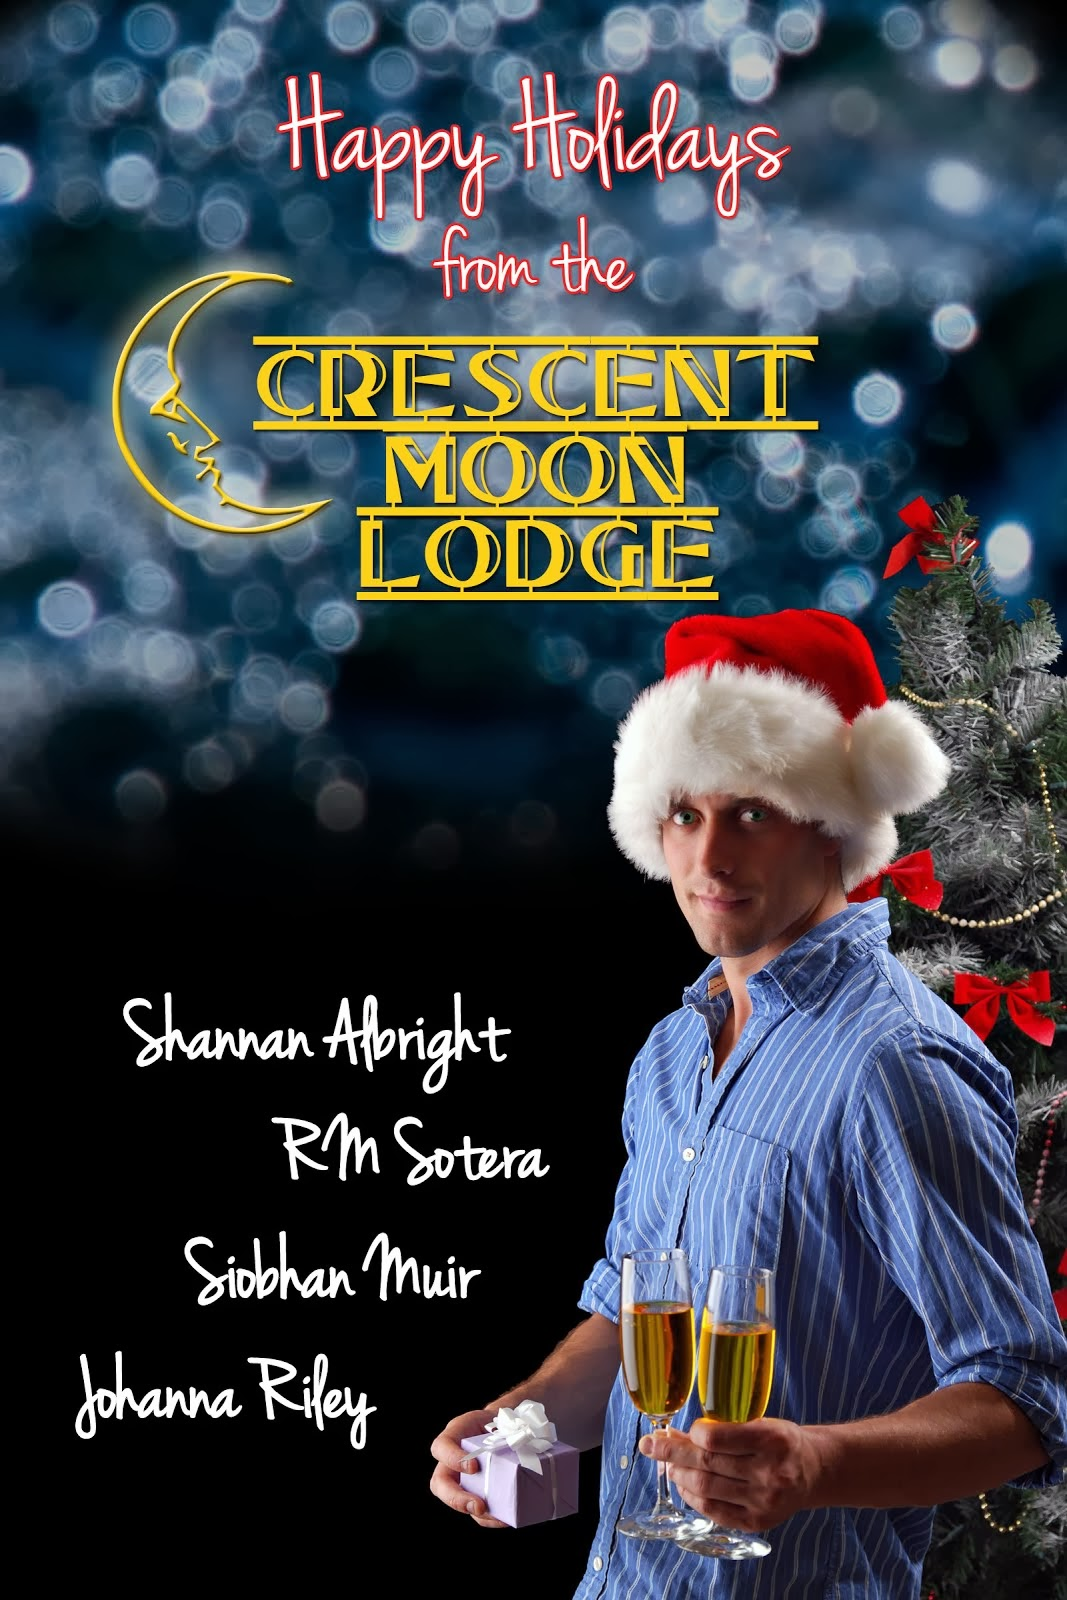 Happy Holidays from the Crescent Moon Lodge